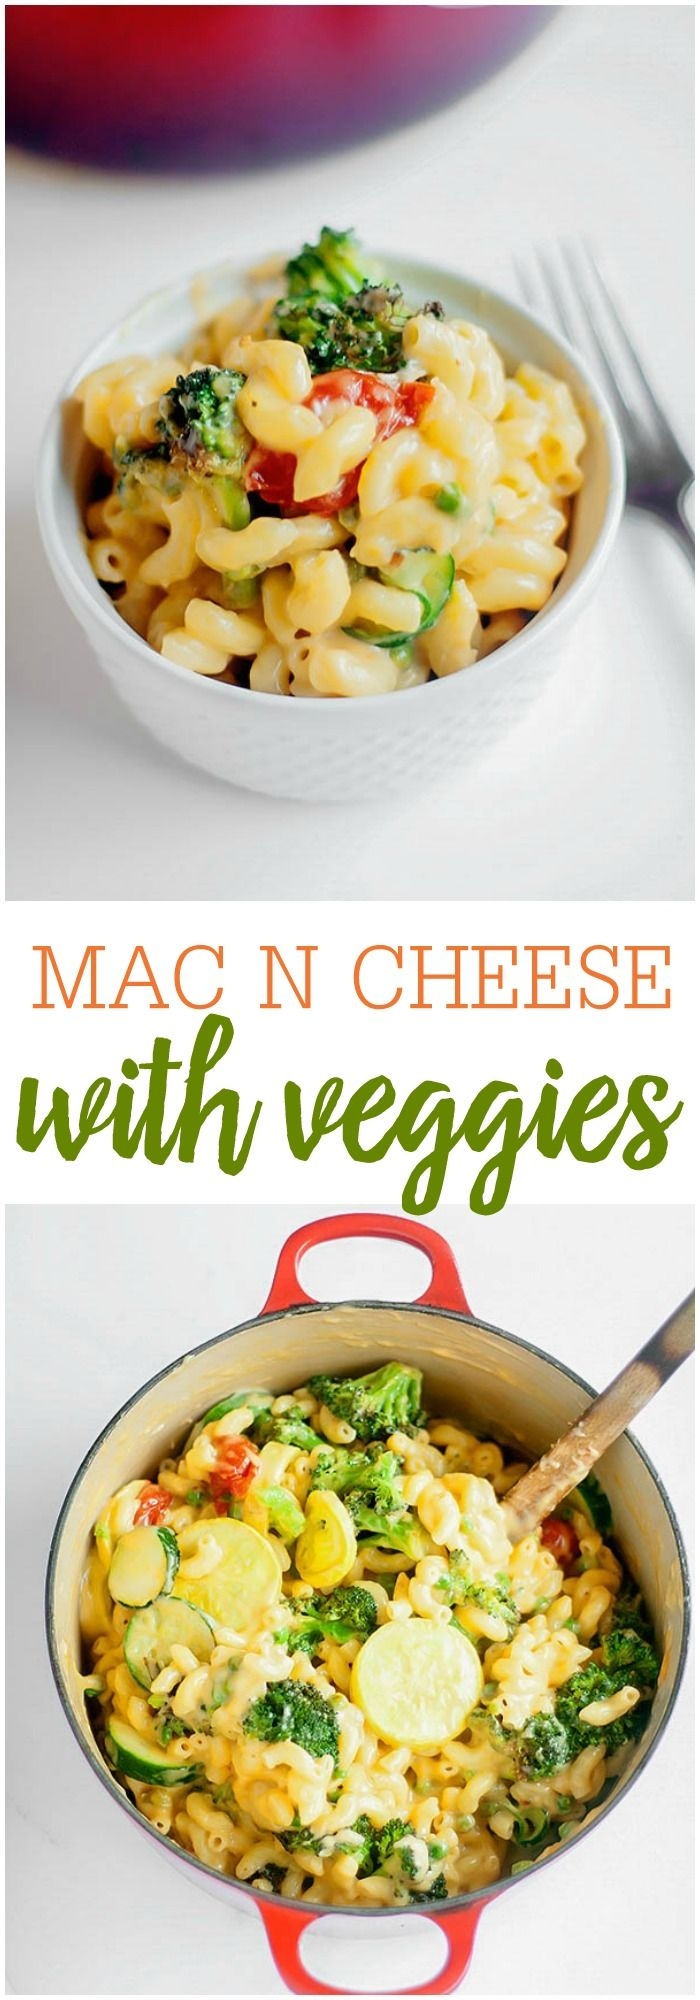 Roasted Vegetable Mac and Cheese - a sure fire way to get your kids to eat their veggies.. covering it in cheese! Roast up your favorite vegetables like broccoli, tomatoes, peppers, zucchini, etc. and mix it with an easy one pot mac and cheese! The family will love it!!